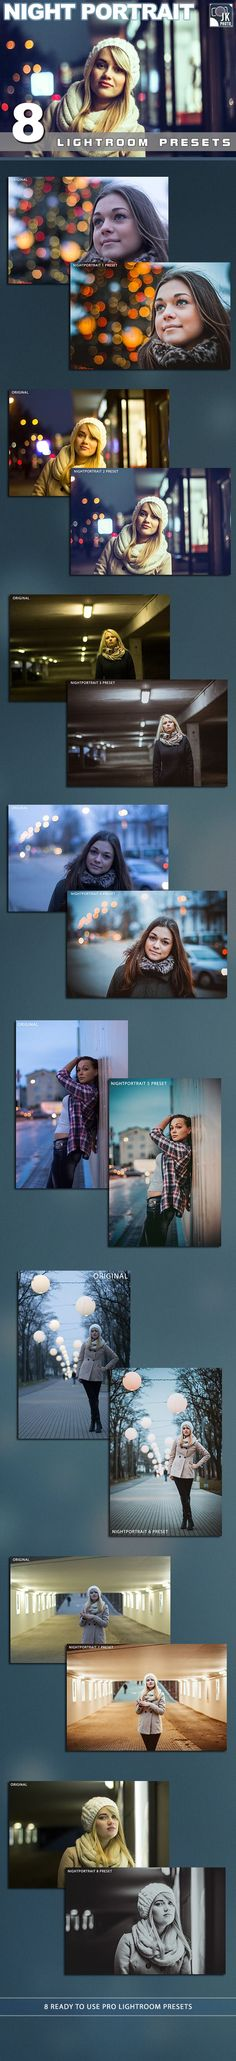 8 Night Portrait Lightroom Presets. Download here: http://graphicriver.net/item/8-night-portrait-lightroom-presets/10126876?ref=ksioks